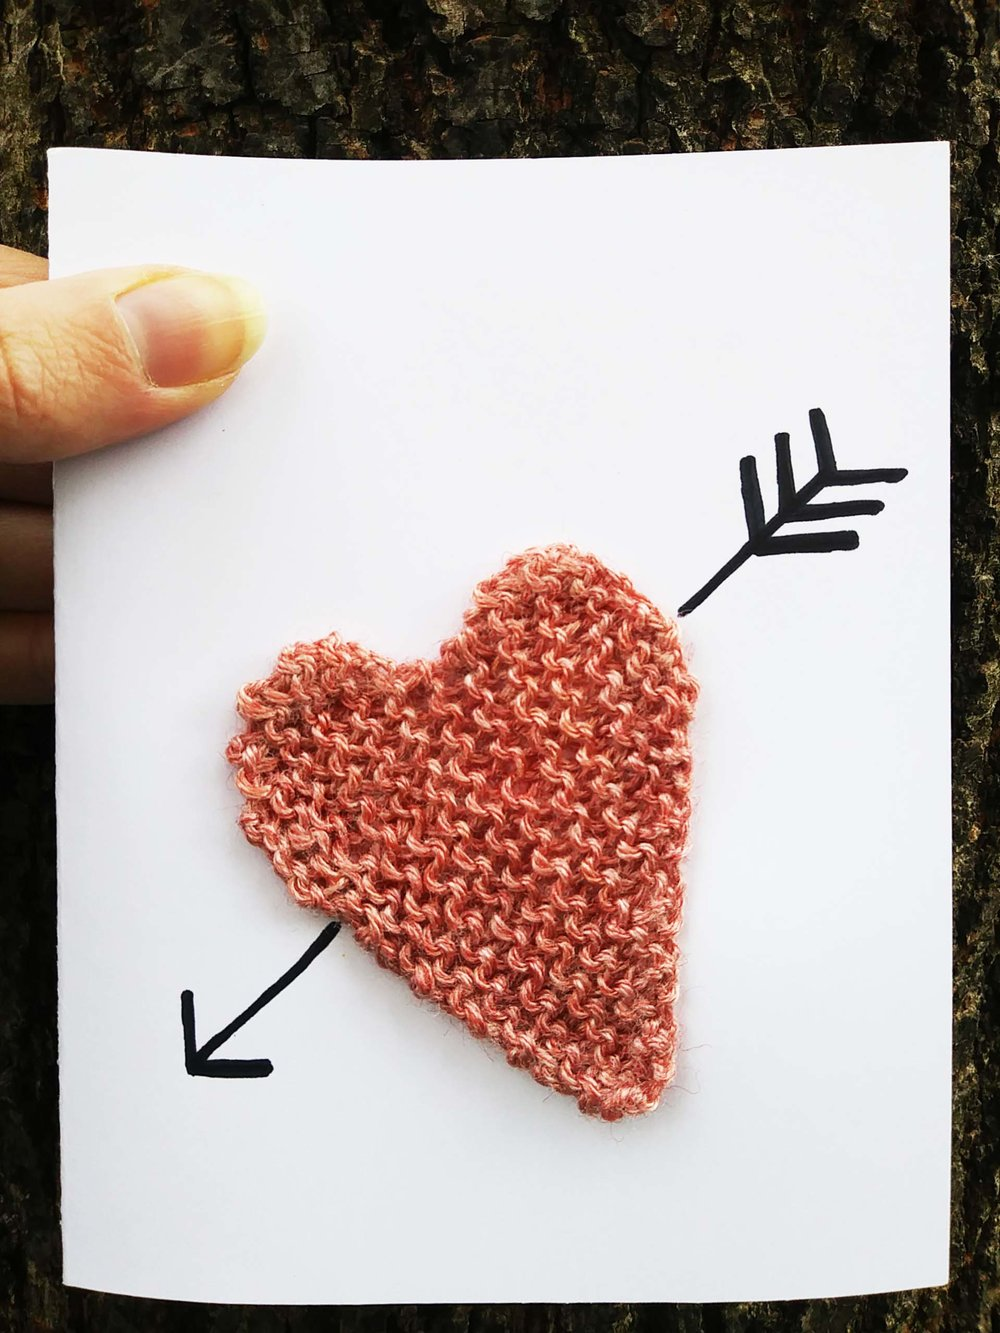 Knitted Cards, $25pp - Options: Heart Throb, Tied the Knot, Popped the Question, O Christmas Tree, Winter Holly